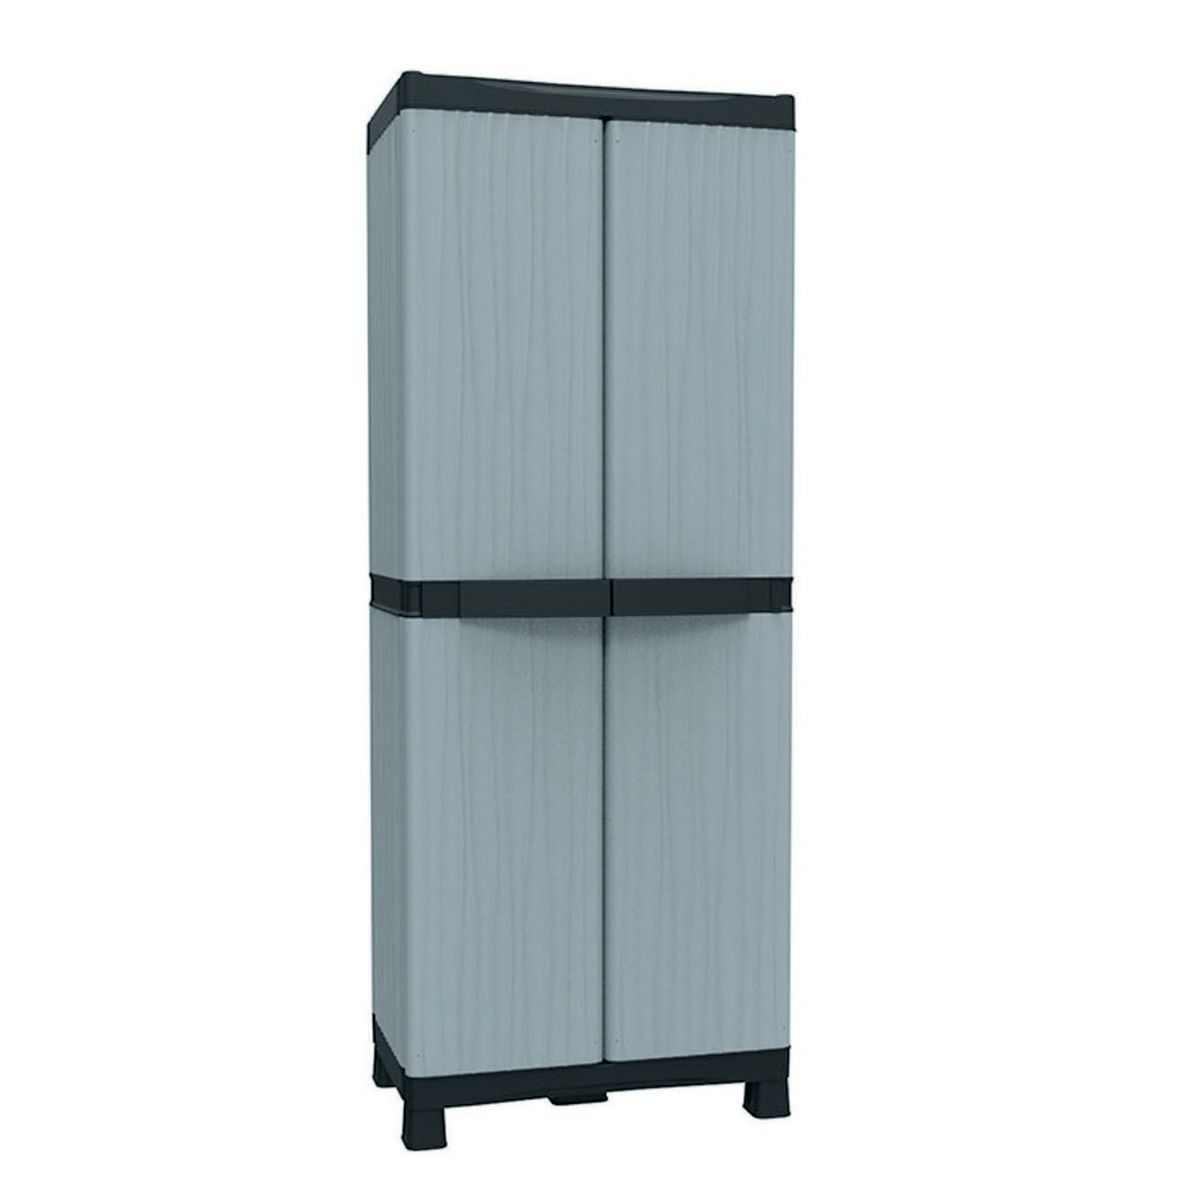 cool armadio spaceo l x p x h prezzi e offerte online with porte spaceo. Black Bedroom Furniture Sets. Home Design Ideas